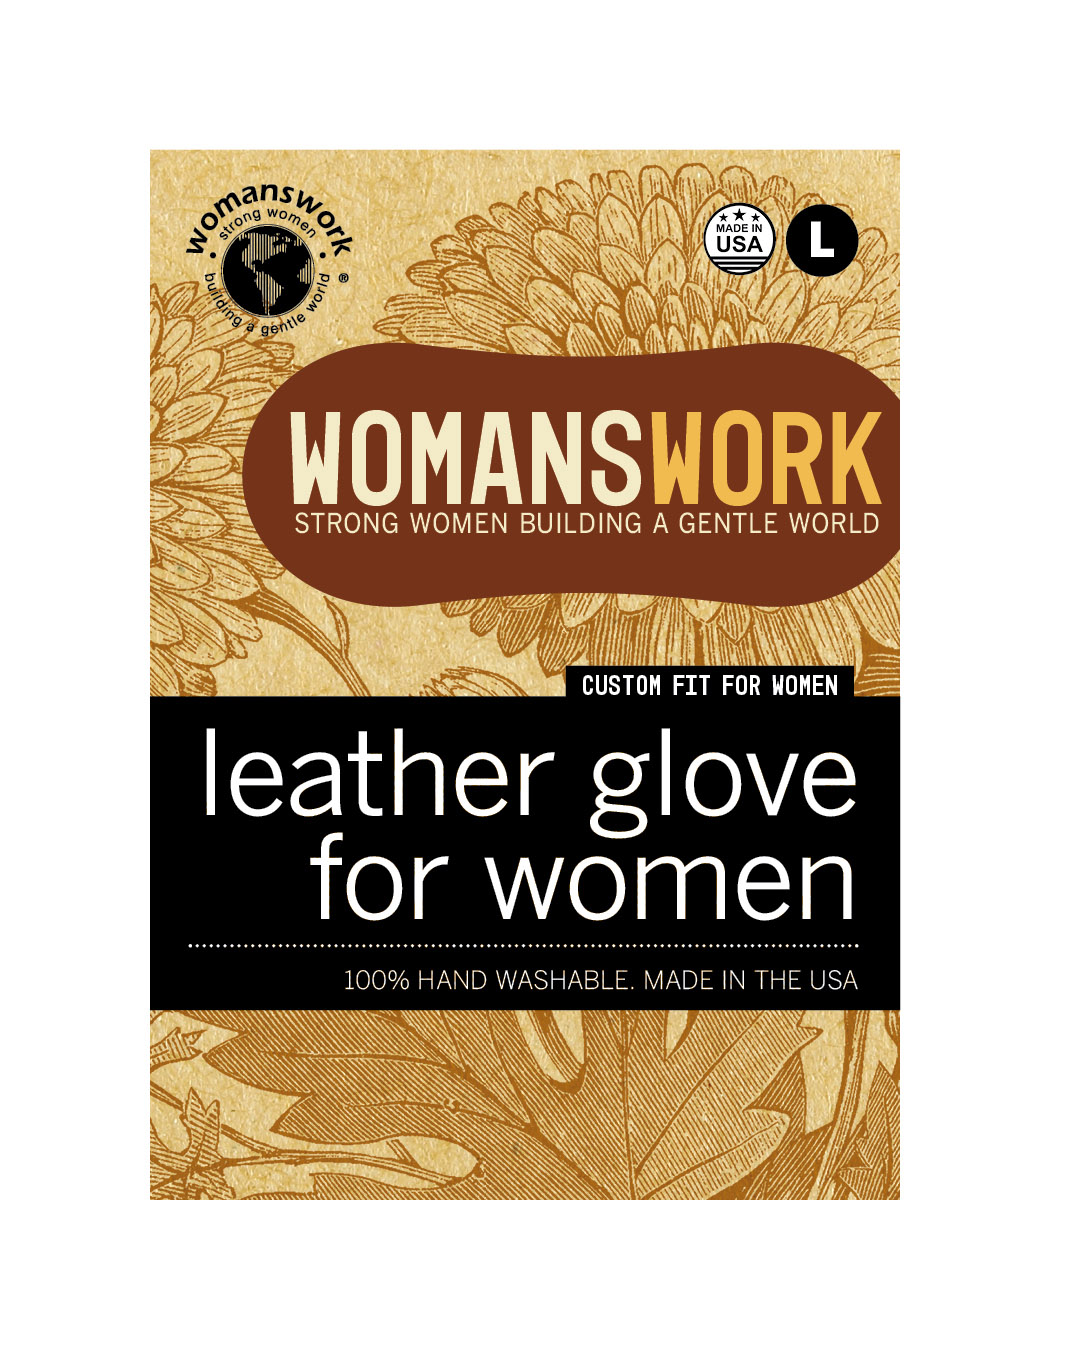 Design for Womanswork glove labels